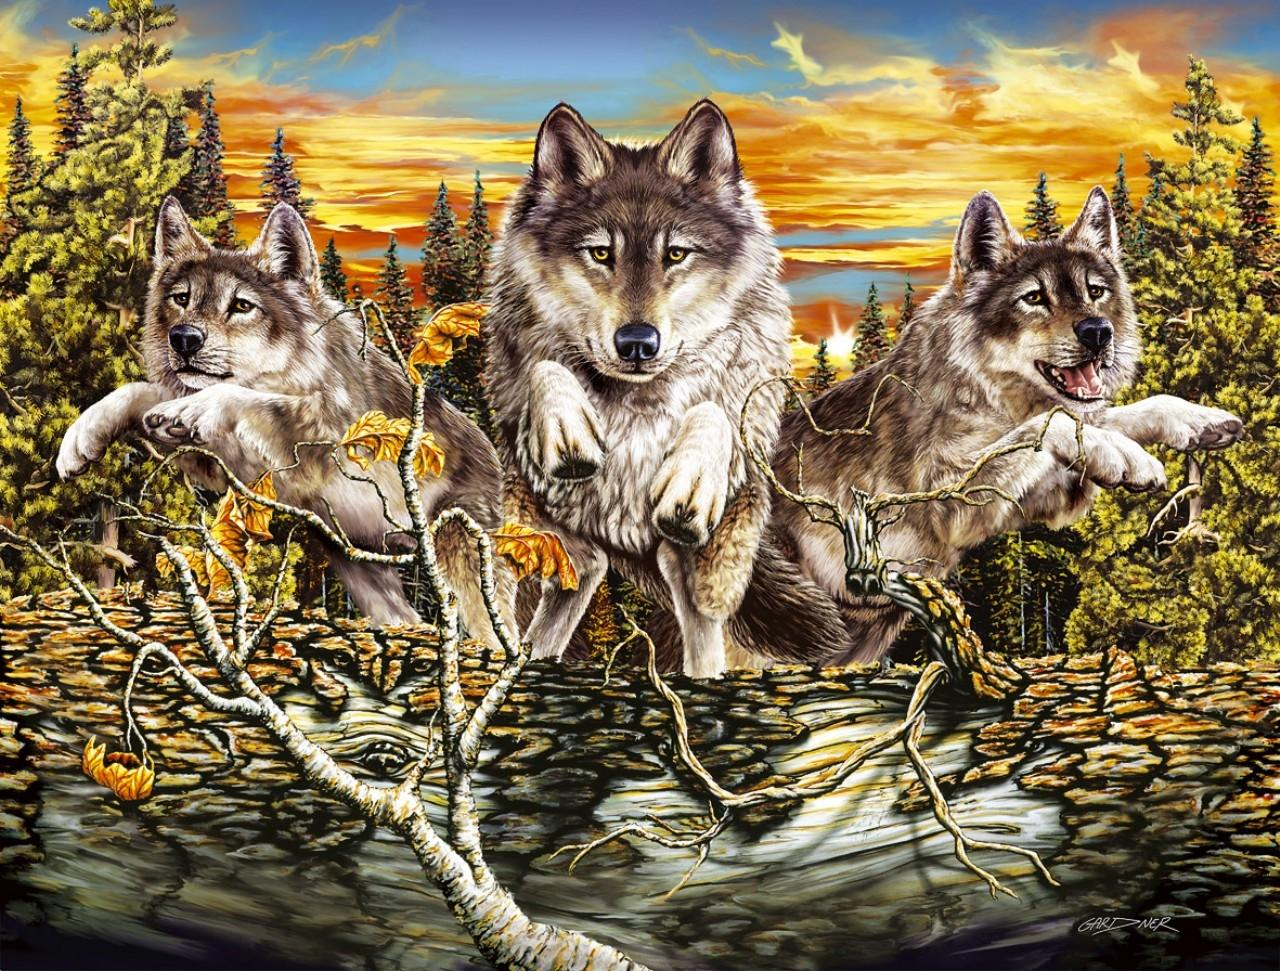 Wolf Fantasy wallpapers HD quality